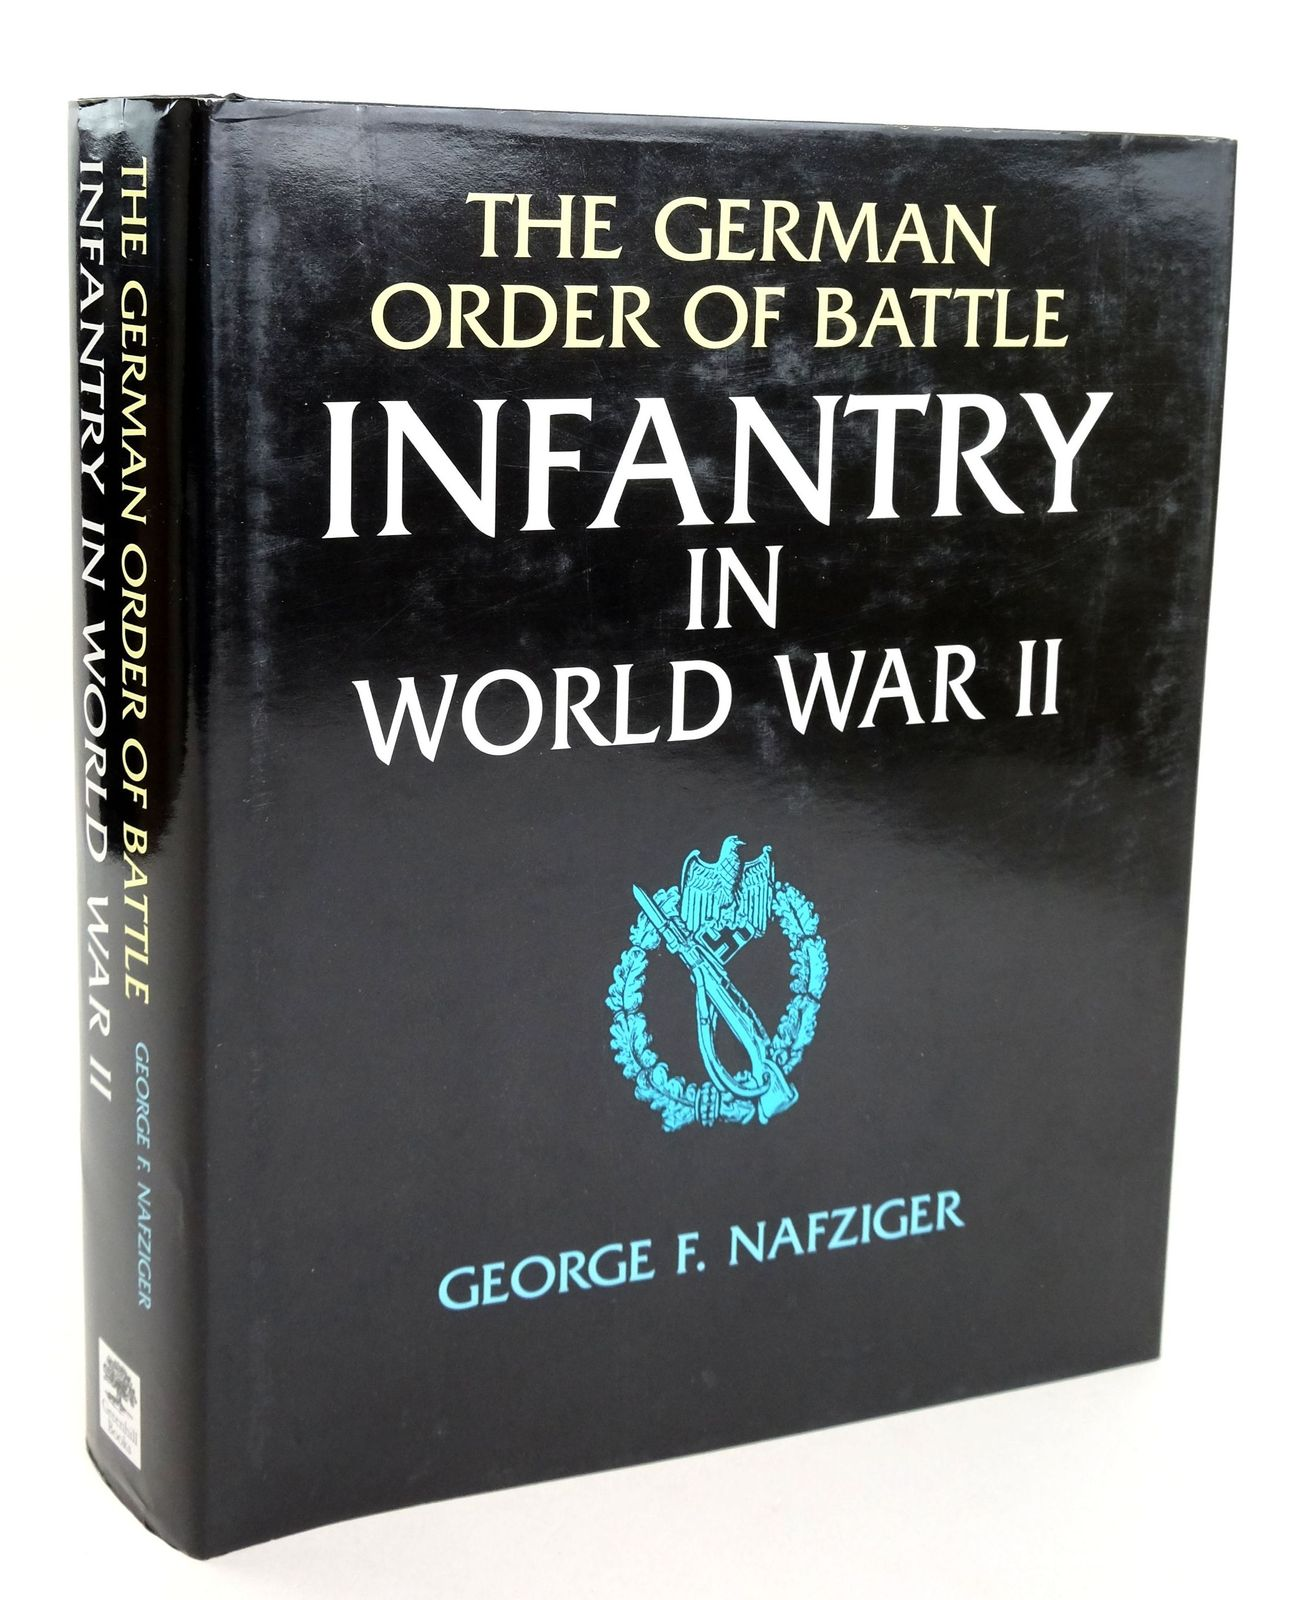 Photo of THE GERMAN ORDER OF BATTLE INFANTRY IN WORLD WAR II written by Nafziger, George published by Greenhill Books (STOCK CODE: 1819332)  for sale by Stella & Rose's Books